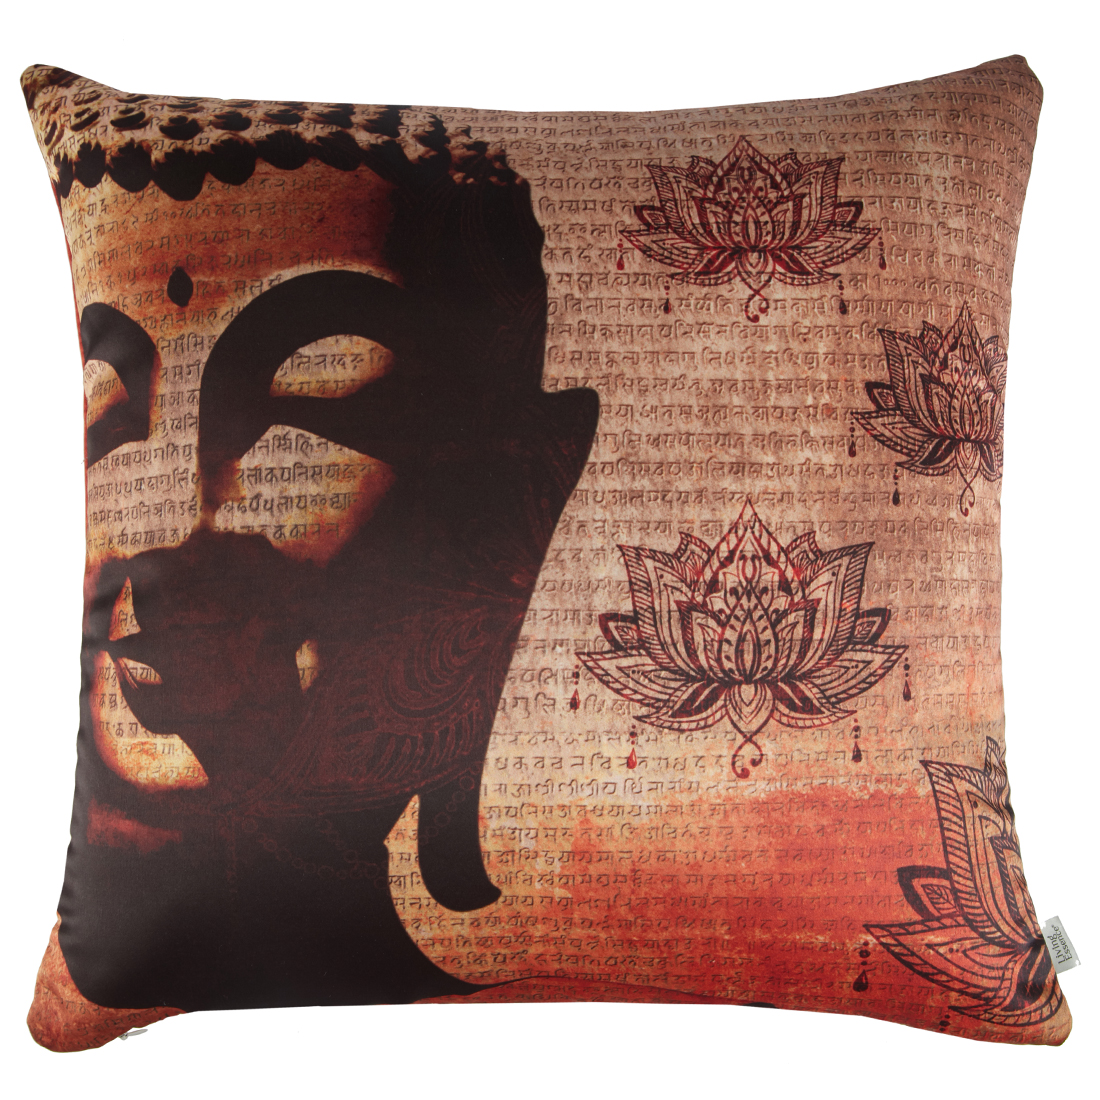 Digital Cushion Cover Buddha Cushion Covers in Poly Satin Colour by Living Essence